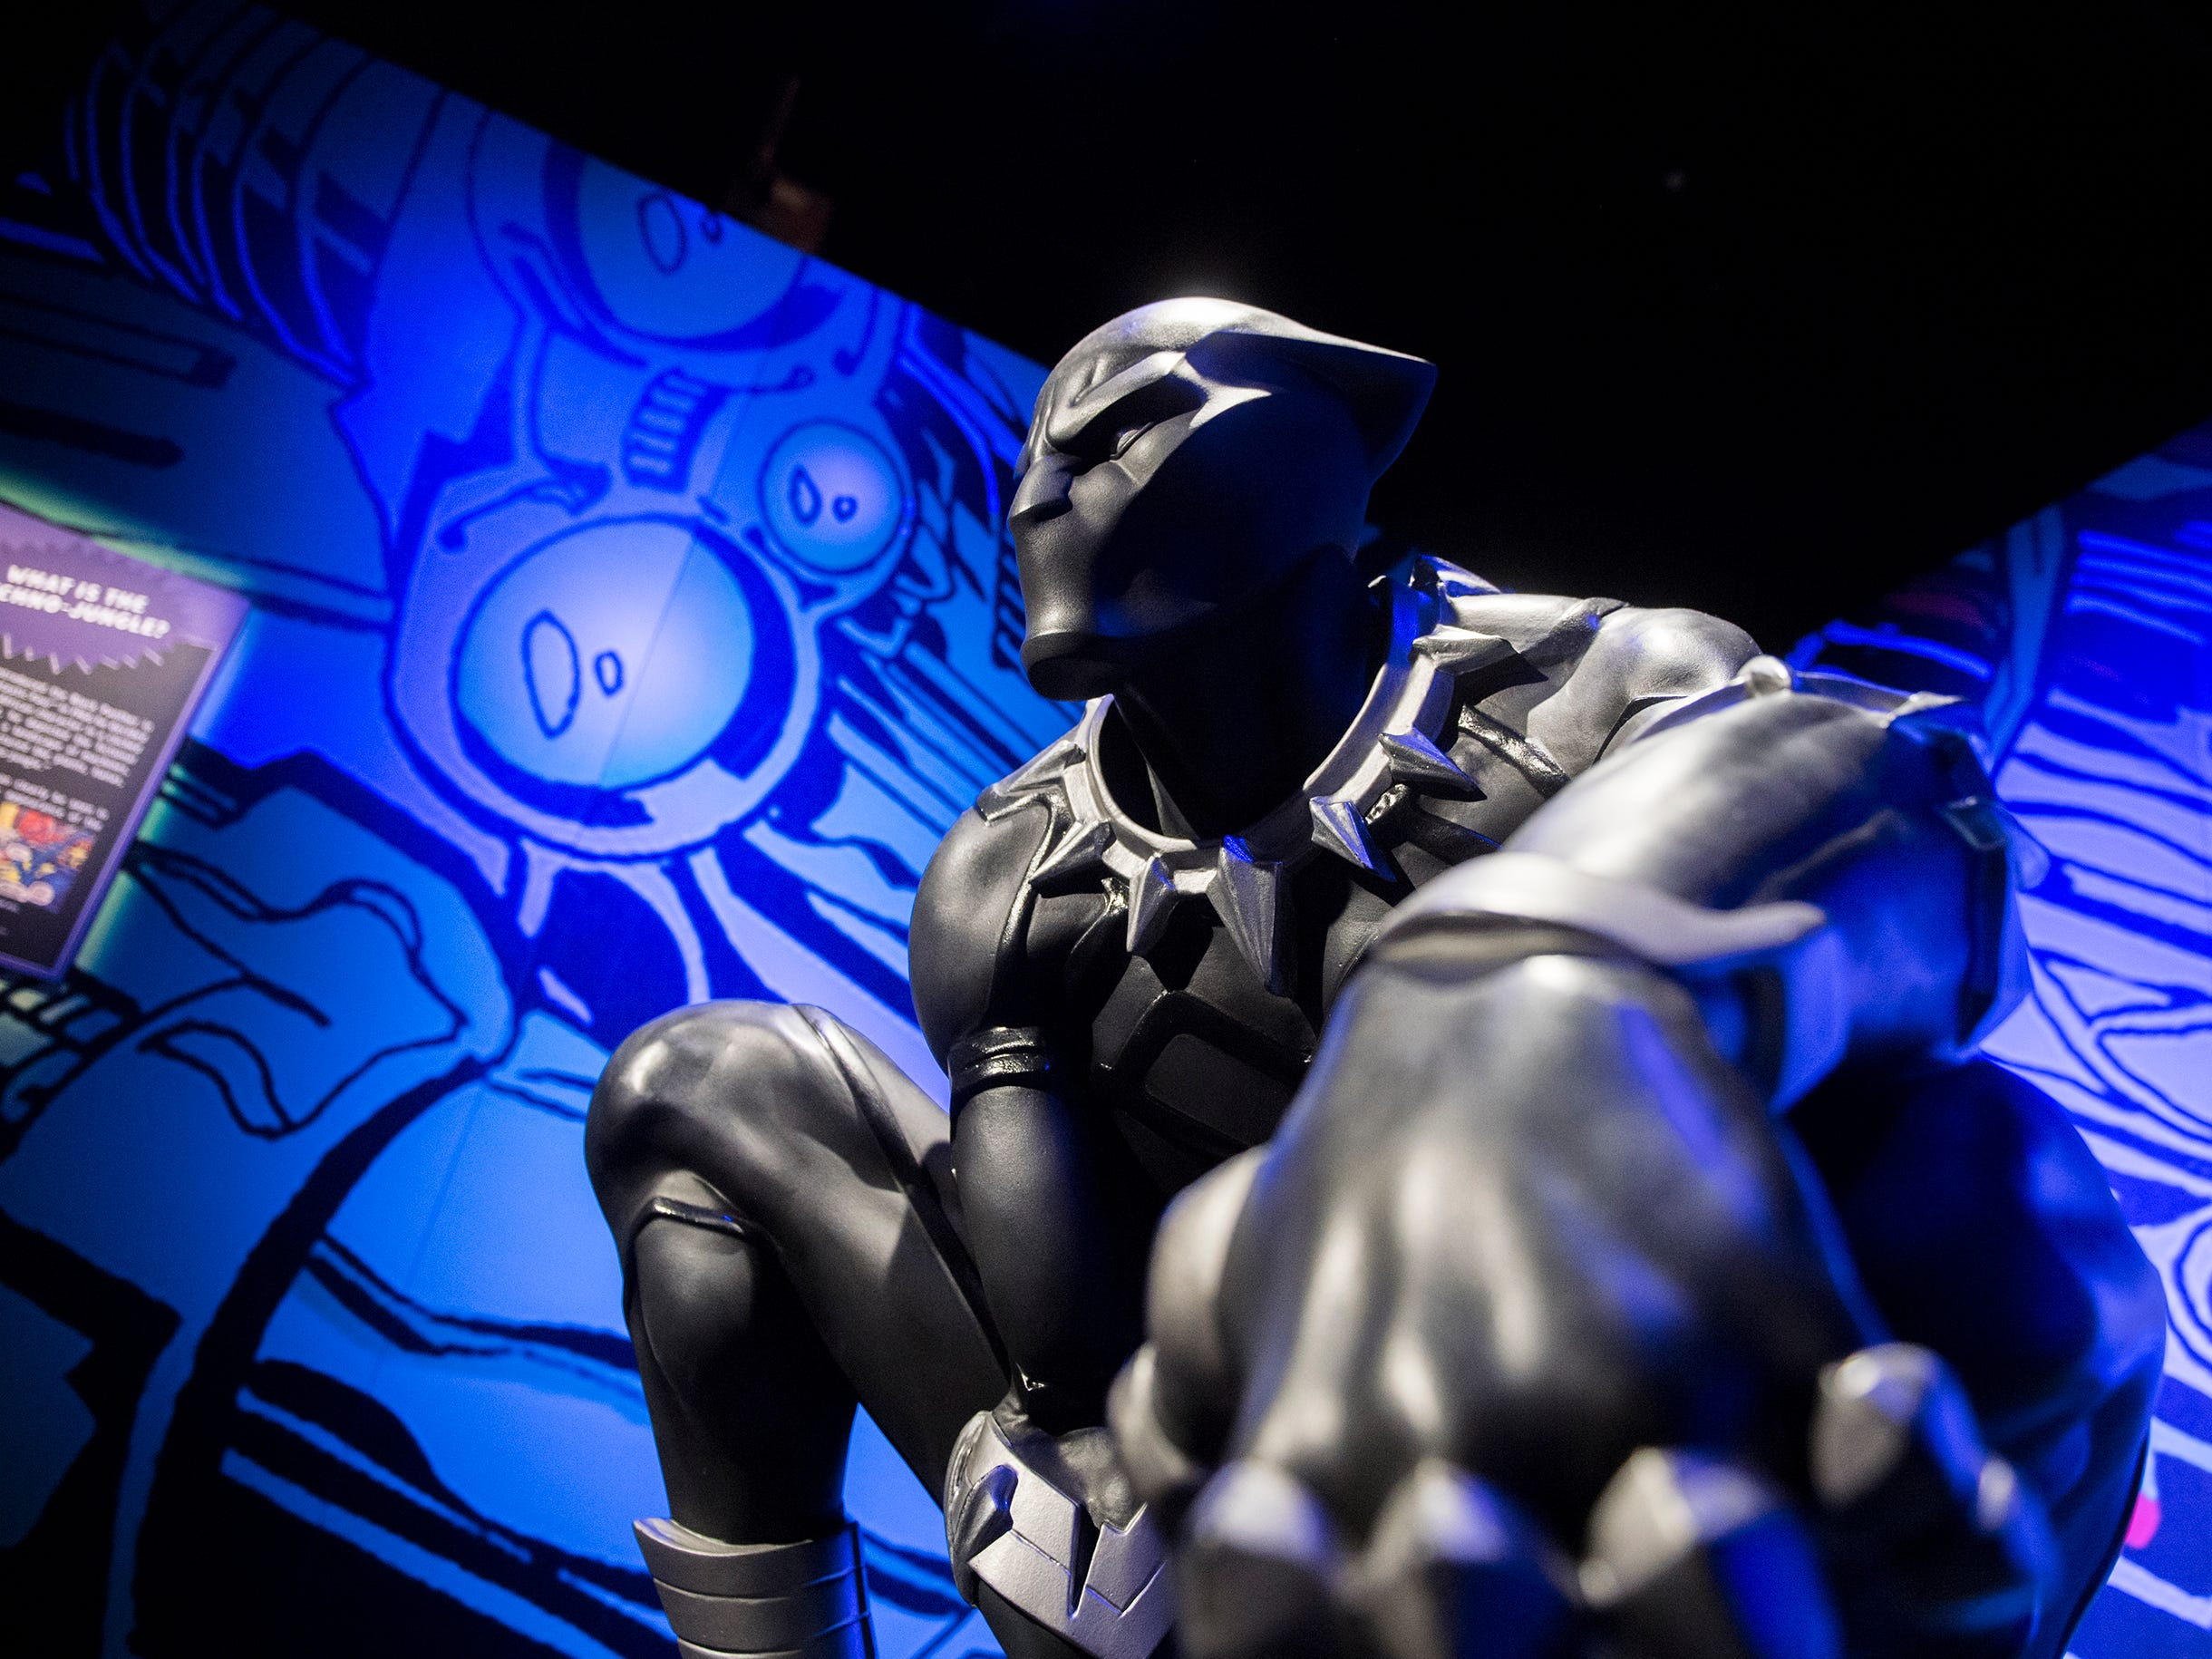 Close up with Black Panther inside the new 'Marvel: Universe of Super Heroes' exhibit at the Franklin Institute Friday, April 12, 2019 in Philadelphia, Pa. The exhibit runs from April 13-September 2.